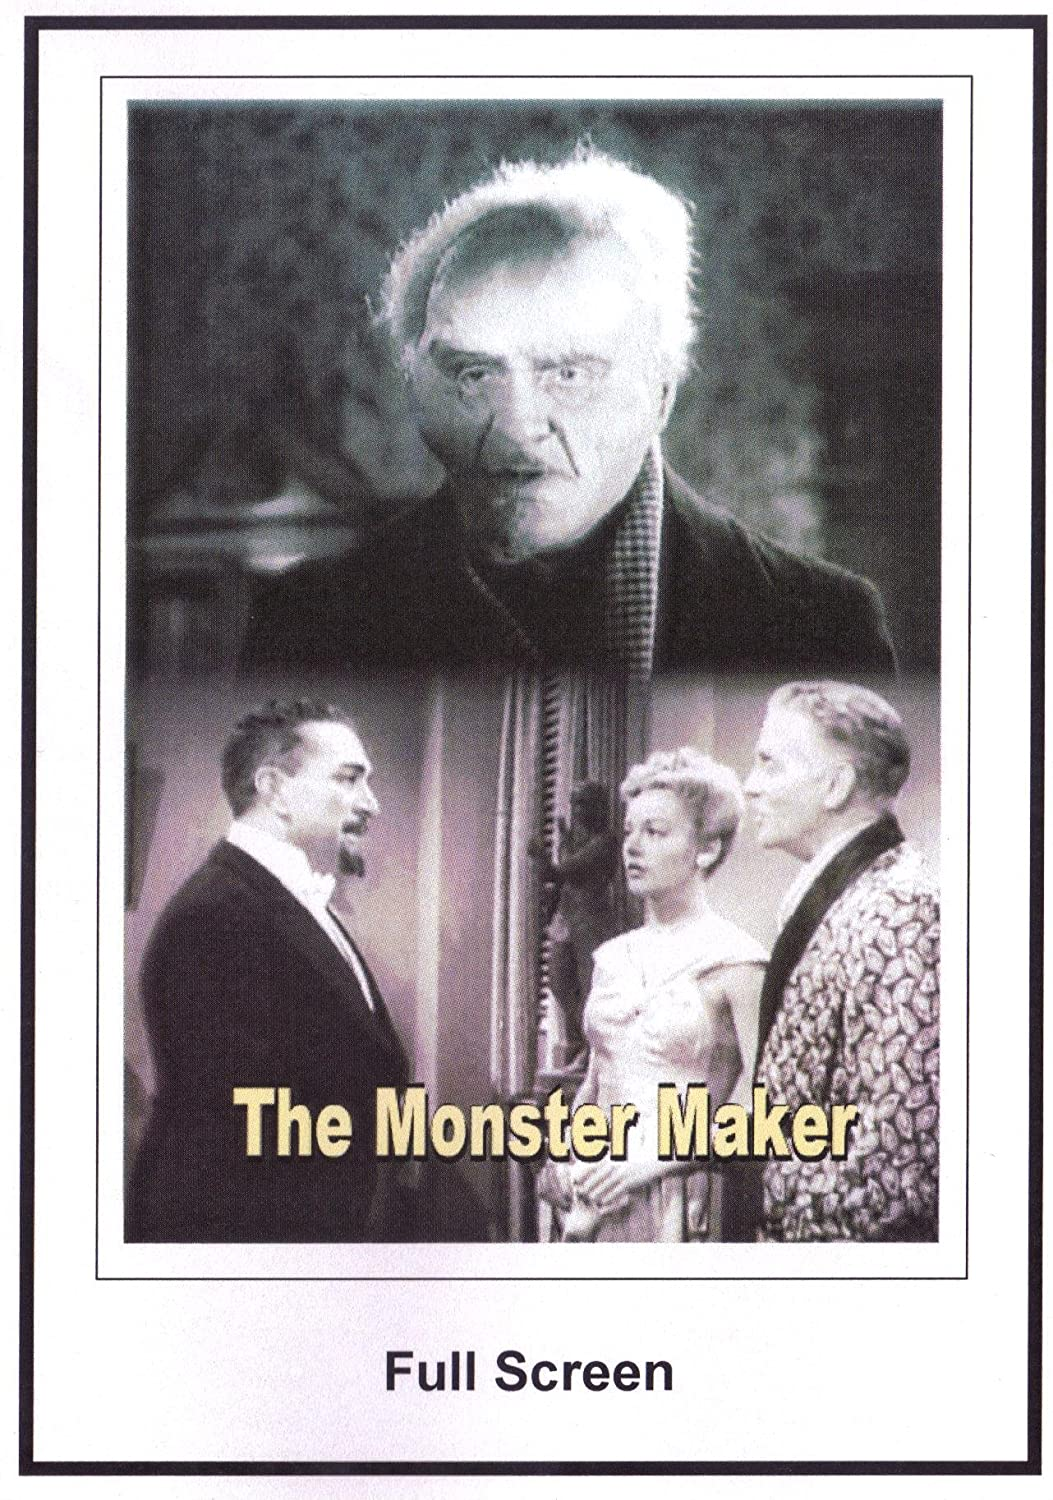 The Monster Maker Starring J. Carrol Naish and Ralph Morgan